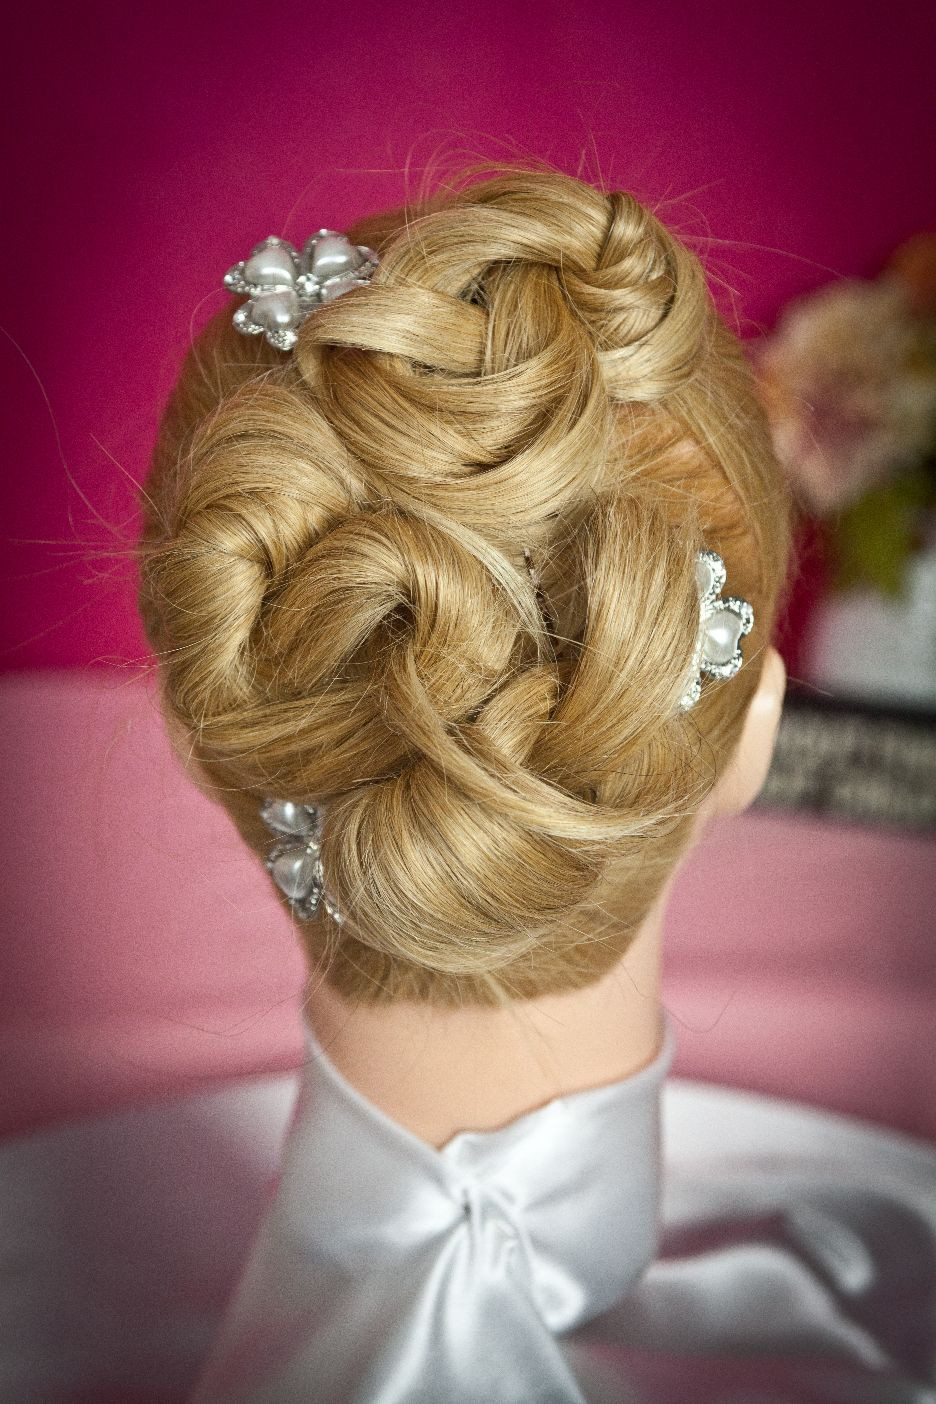 Best ideas about Diy Prom Hairstyle . Save or Pin Pin by HairsbyChristine Frank on Do It Yourself Updos Now.